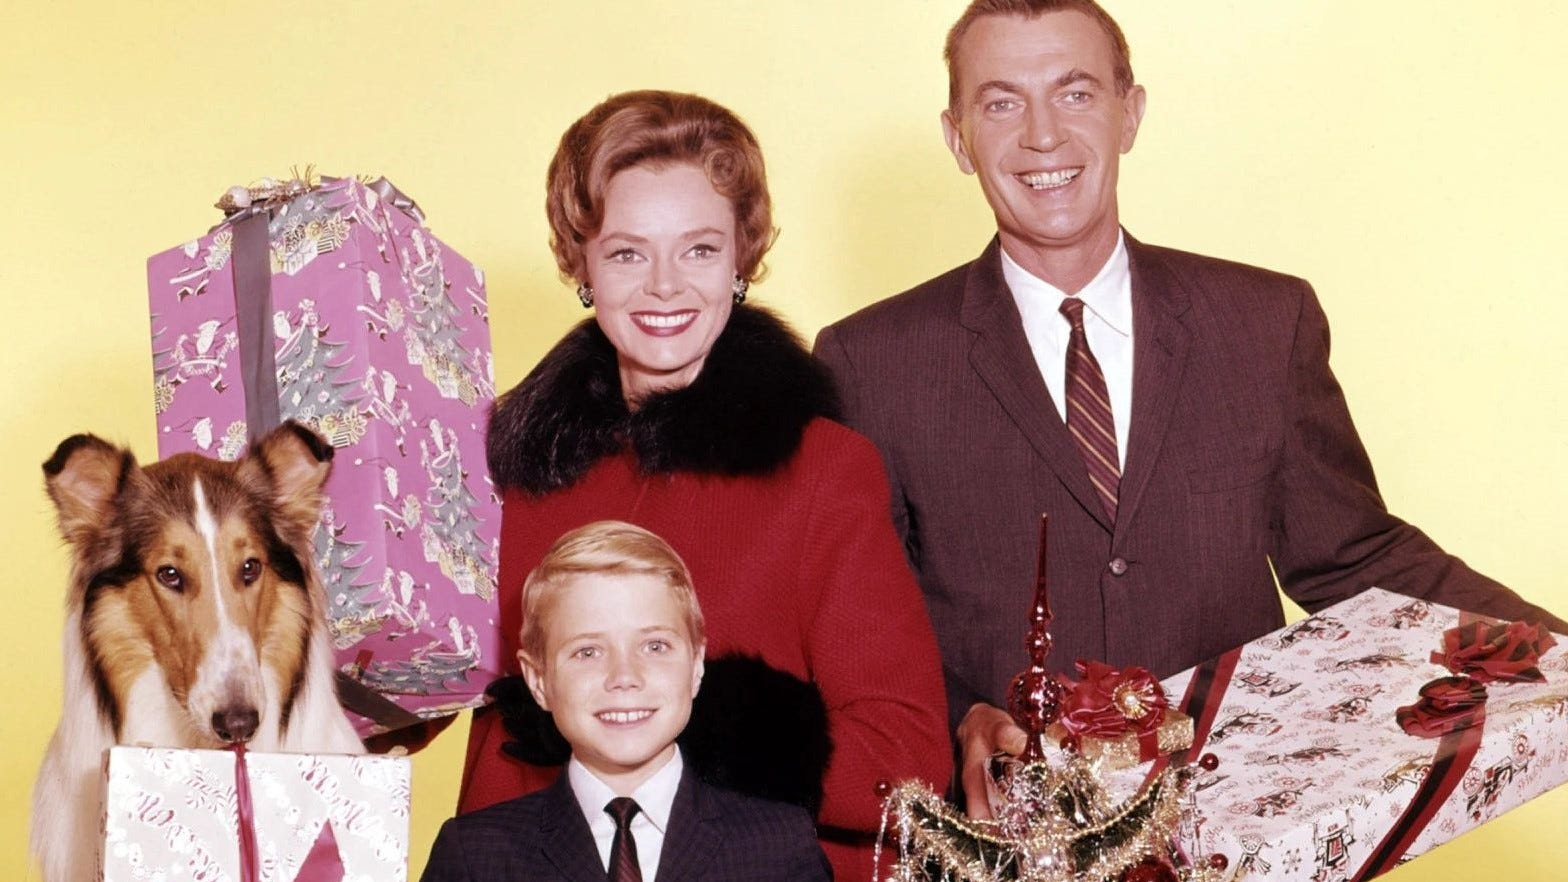 62297e24 d65e 462a 888a 443e1290f1c5 4  Jon Provost June Lockhart Hugh Reilly and Lassie pose for a Christmas photo jpg?crop=1568,882,x0,y64&width=1568&height=882&format=pjpg&auto=webp.'